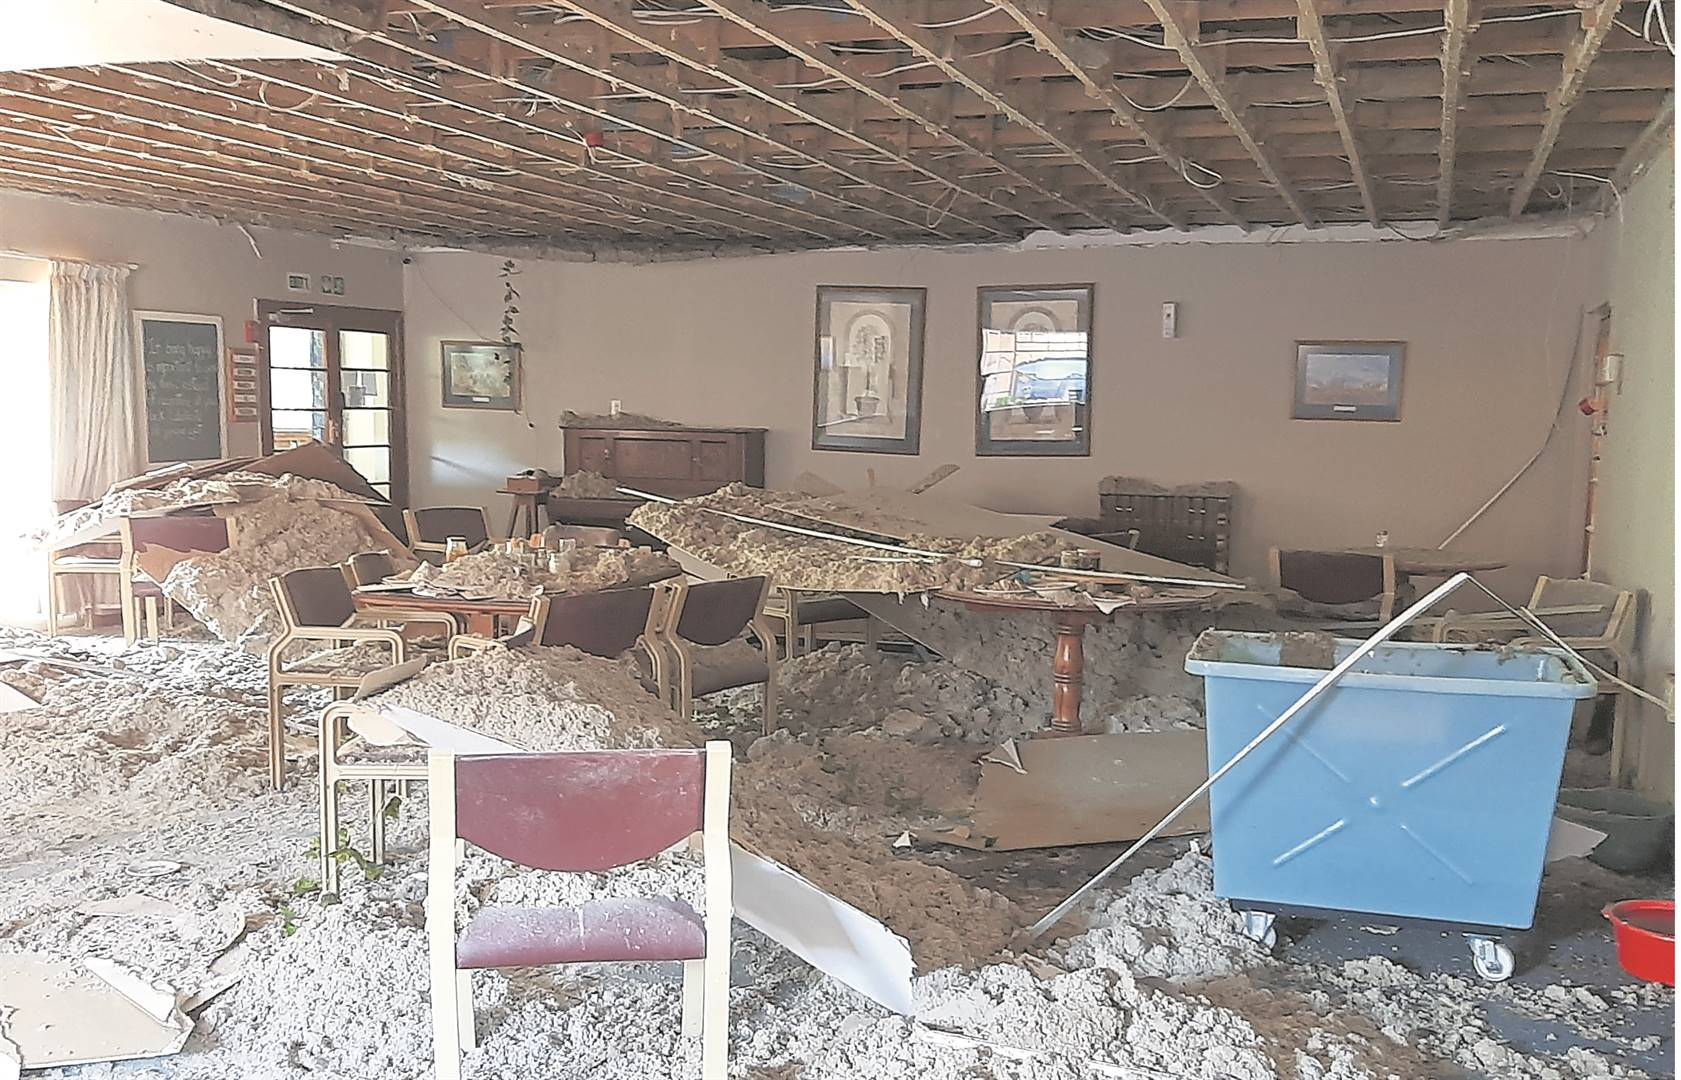 Ceiling boards in the dining room of the Amberfield Care Centre came crashing down on residents and staff during Tuesday's storm in Howick.